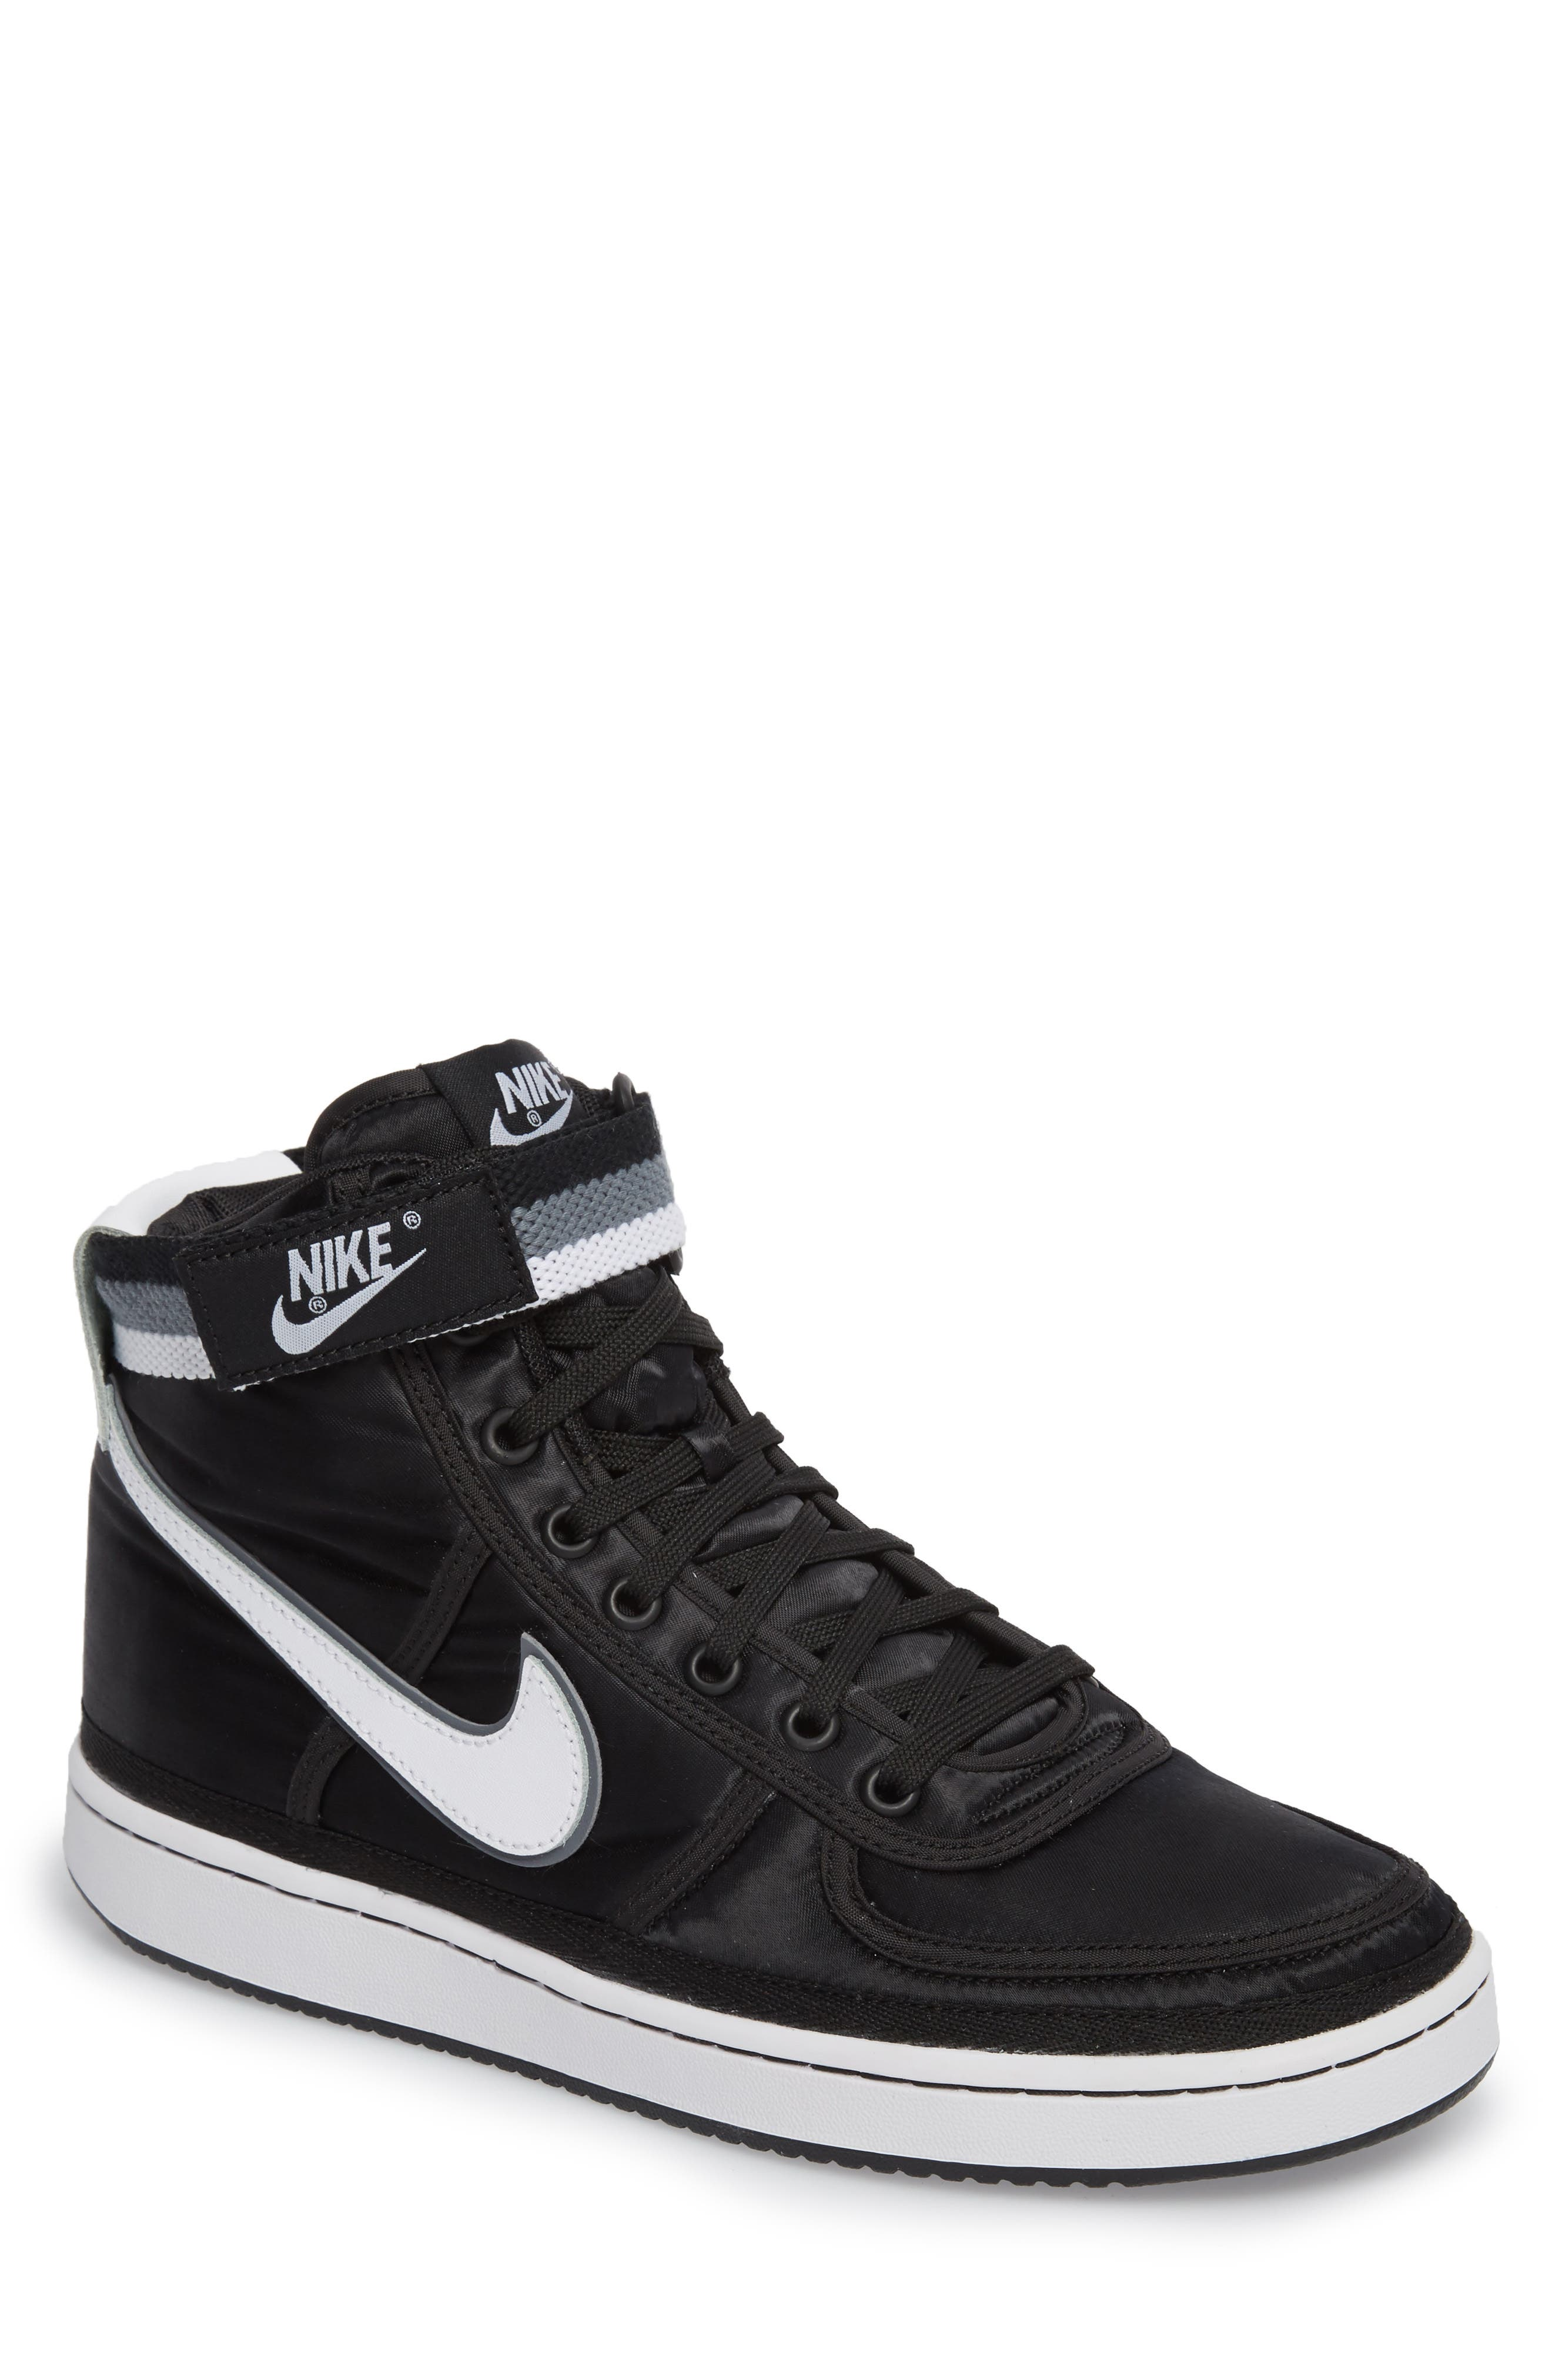 NIKE Vandal High Supreme High Top Sneaker, Main, color, 001